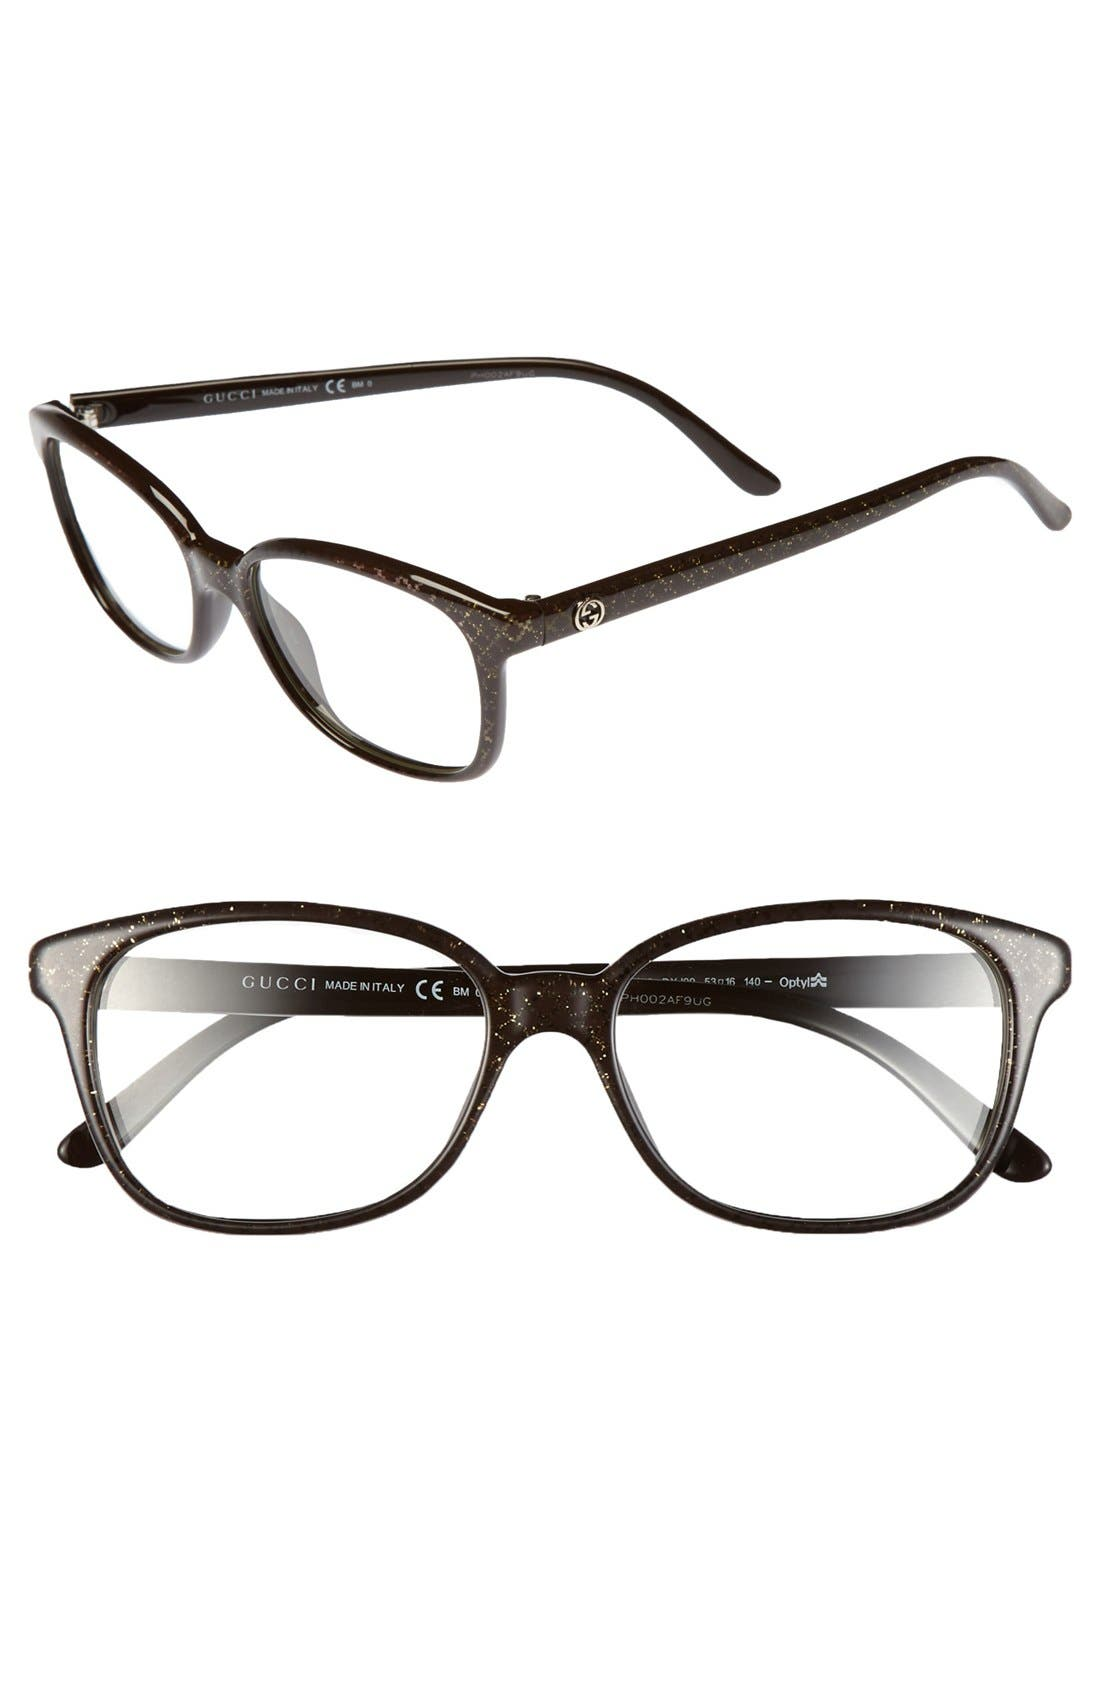 Gucci 53mm Optical Glasses (Online Only)